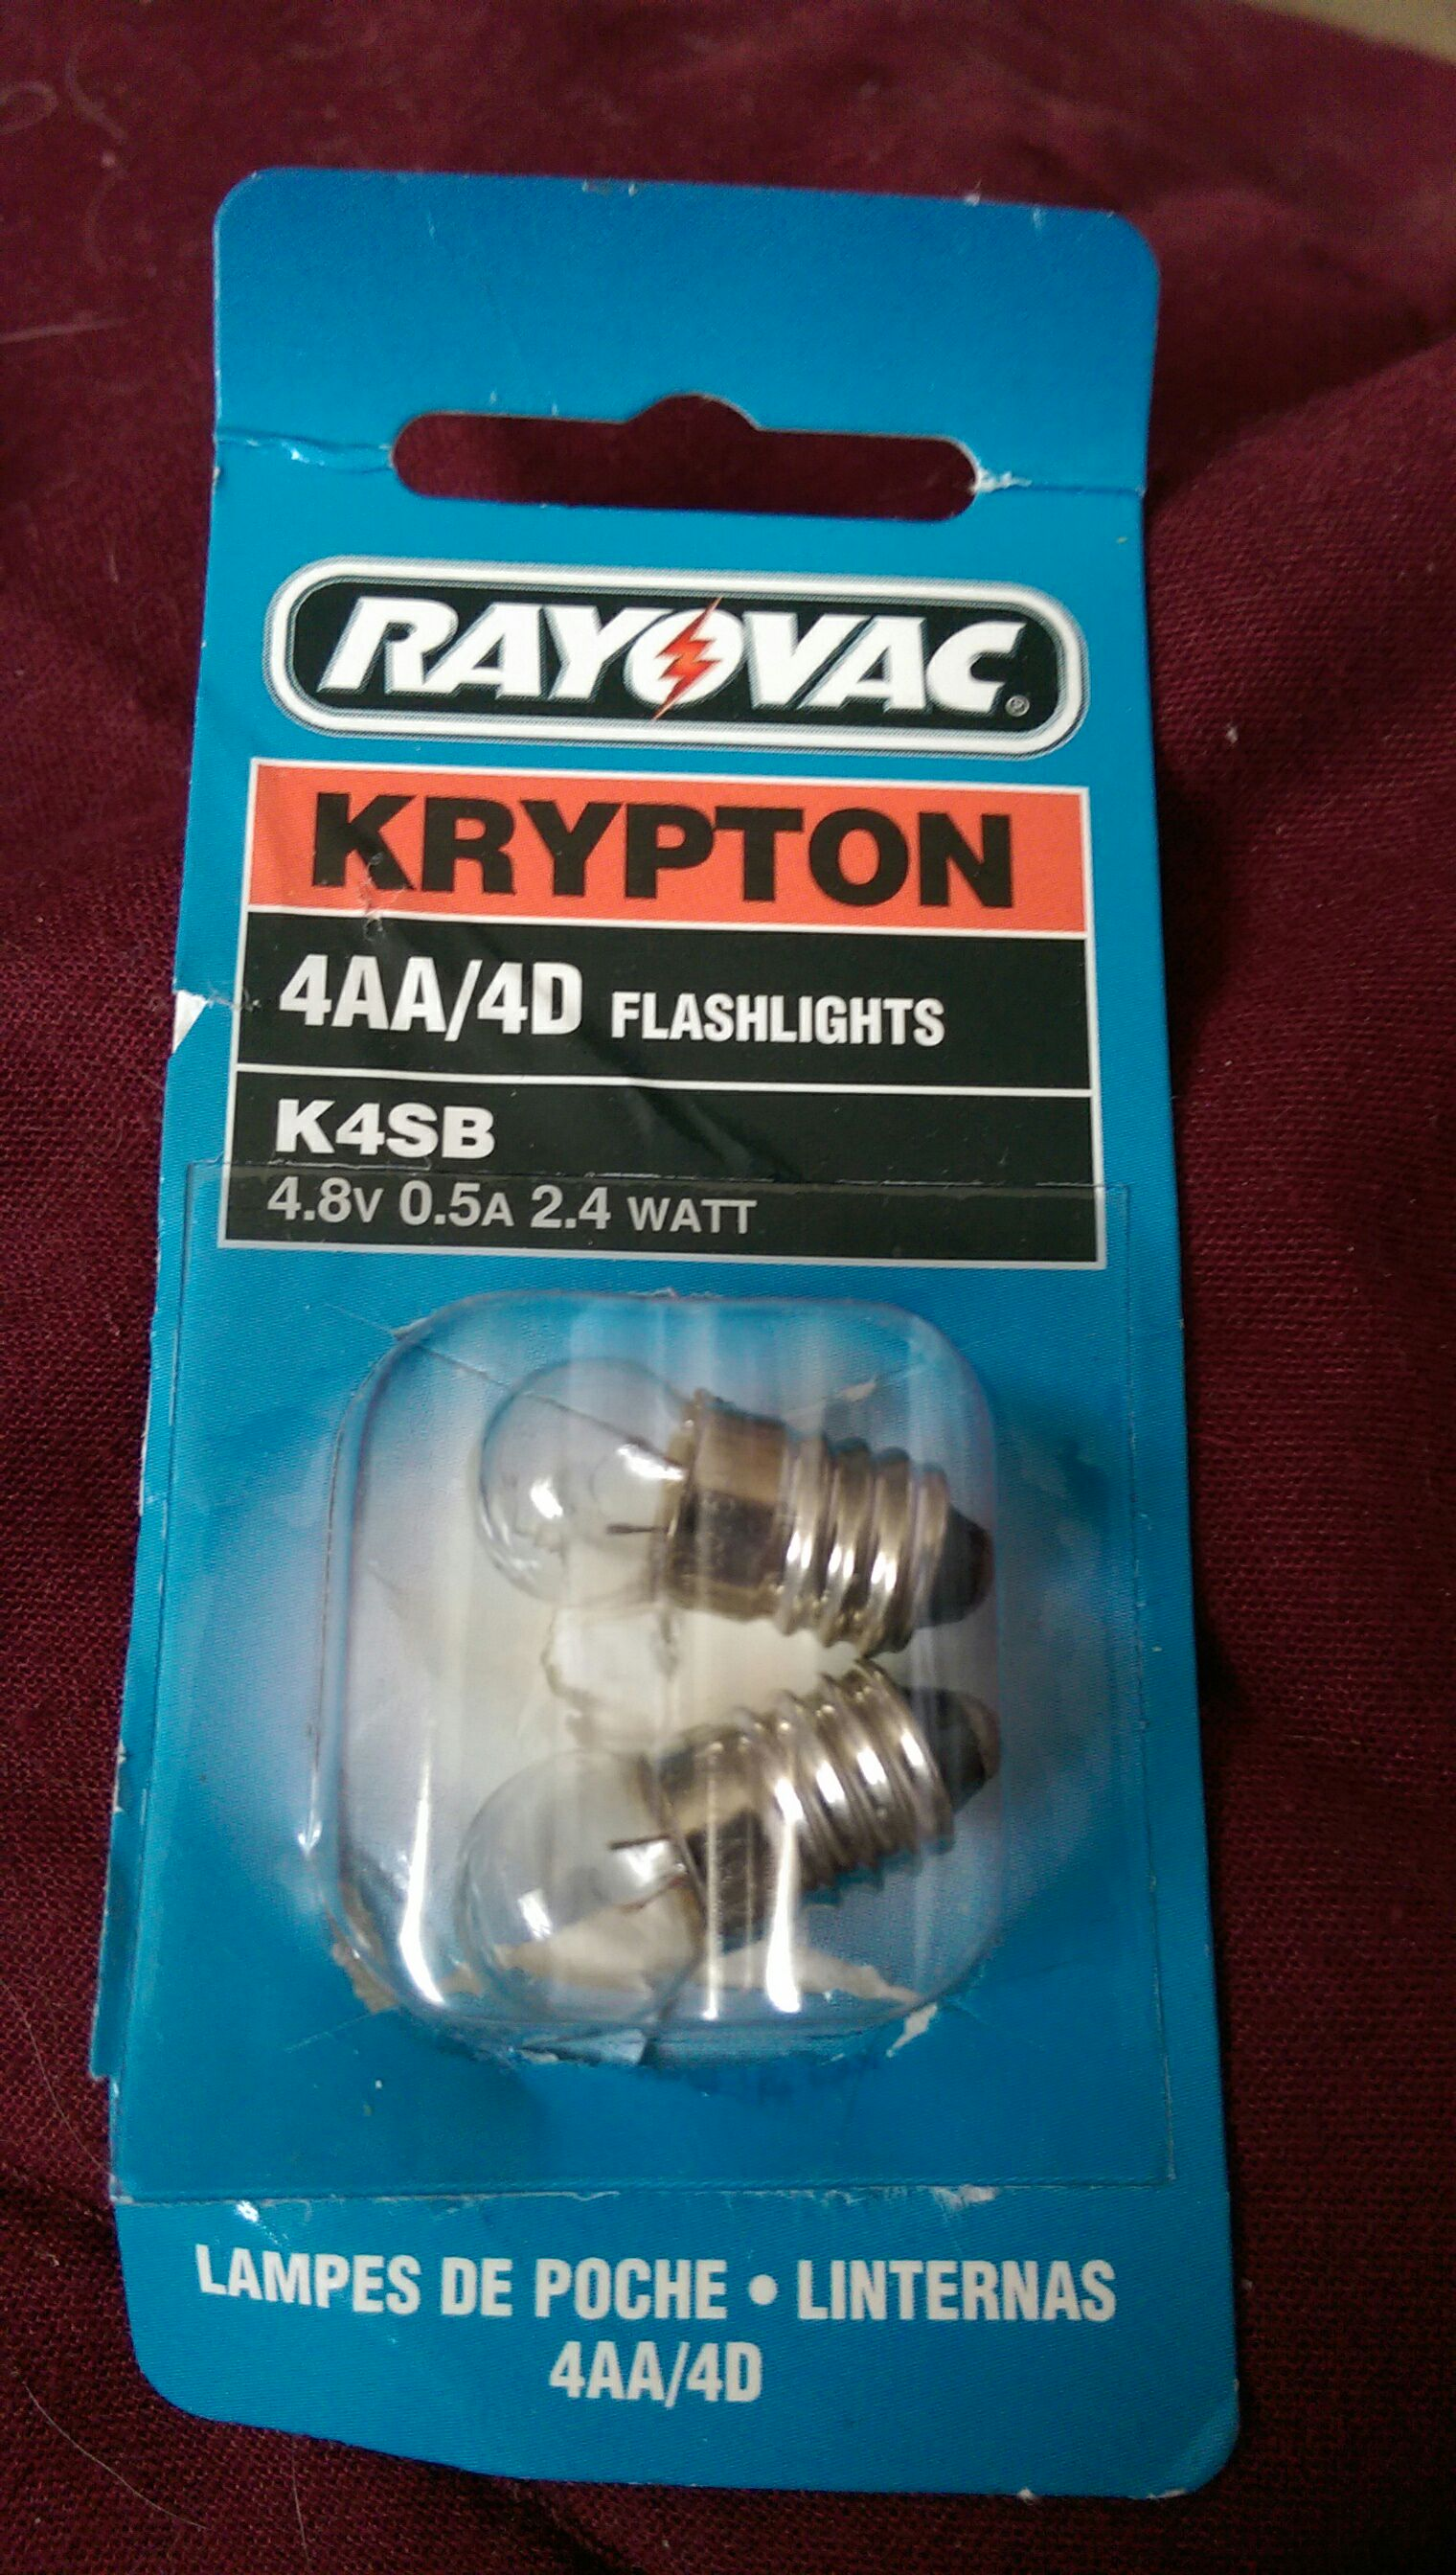 Rayovac Krypton 4 AA/4 D Flashlight bulbs Ornament - Rayovac front image (front cover)